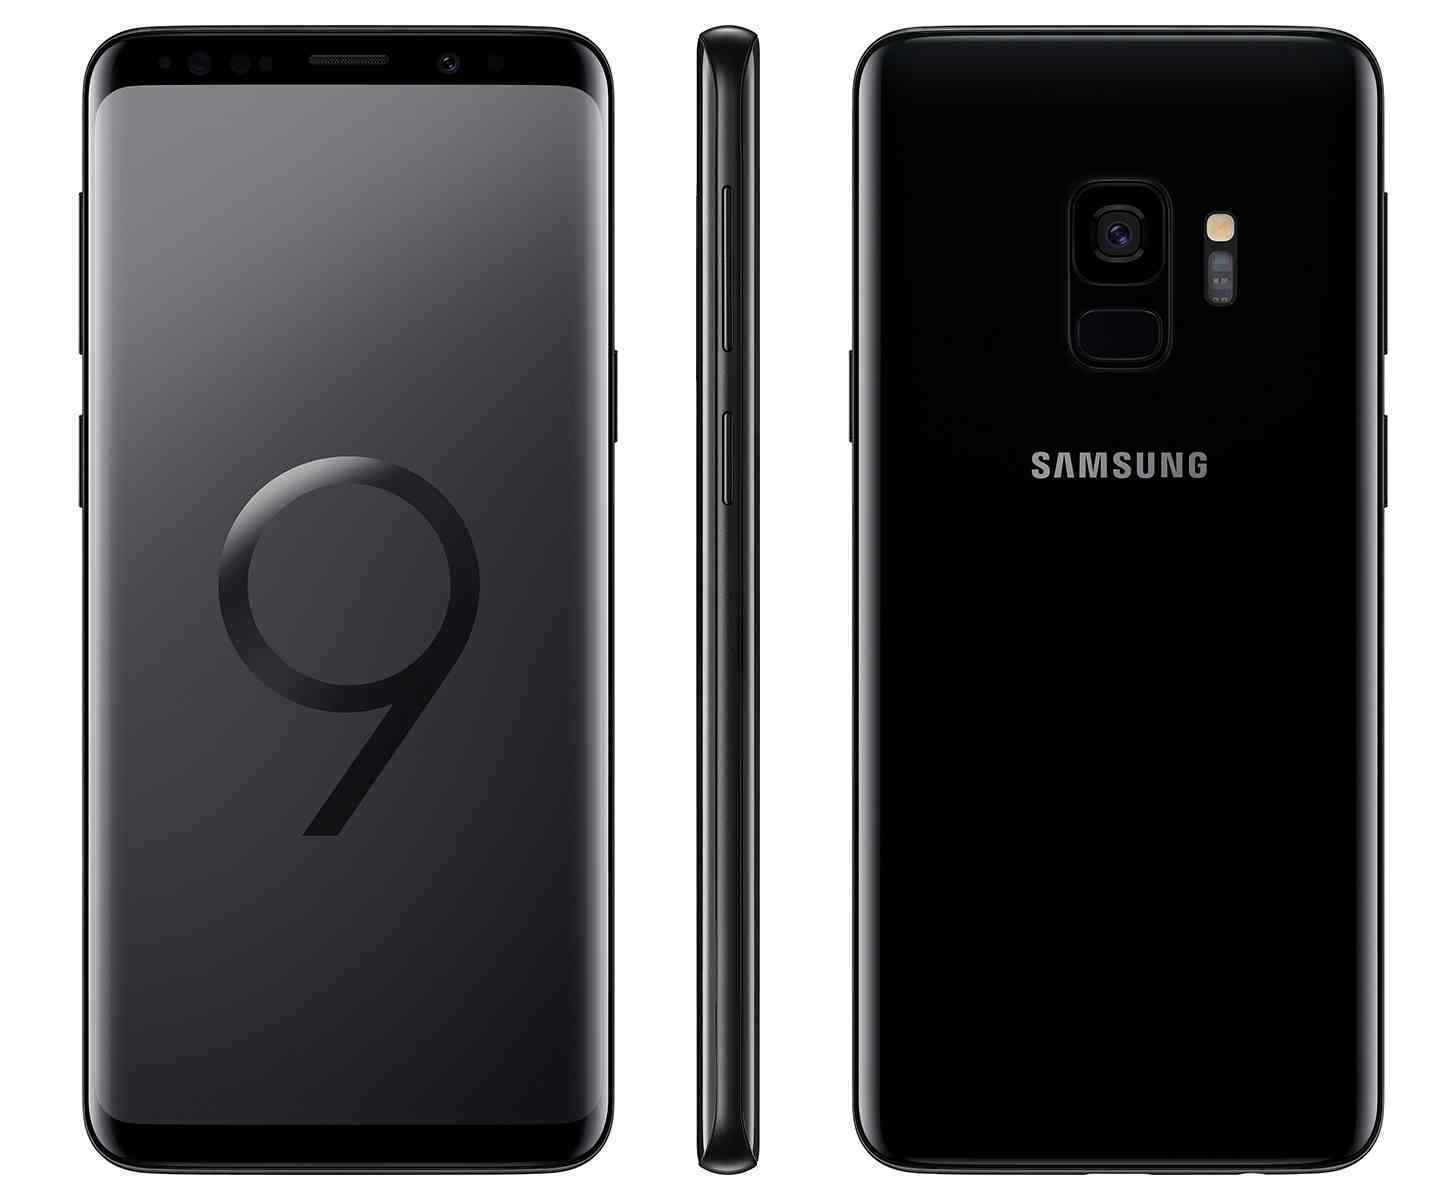 Android Phone - Samsung Galaxy S9  SM-G960U1 - 64GB - Midnight Black (Factory Unlocked) 9/10